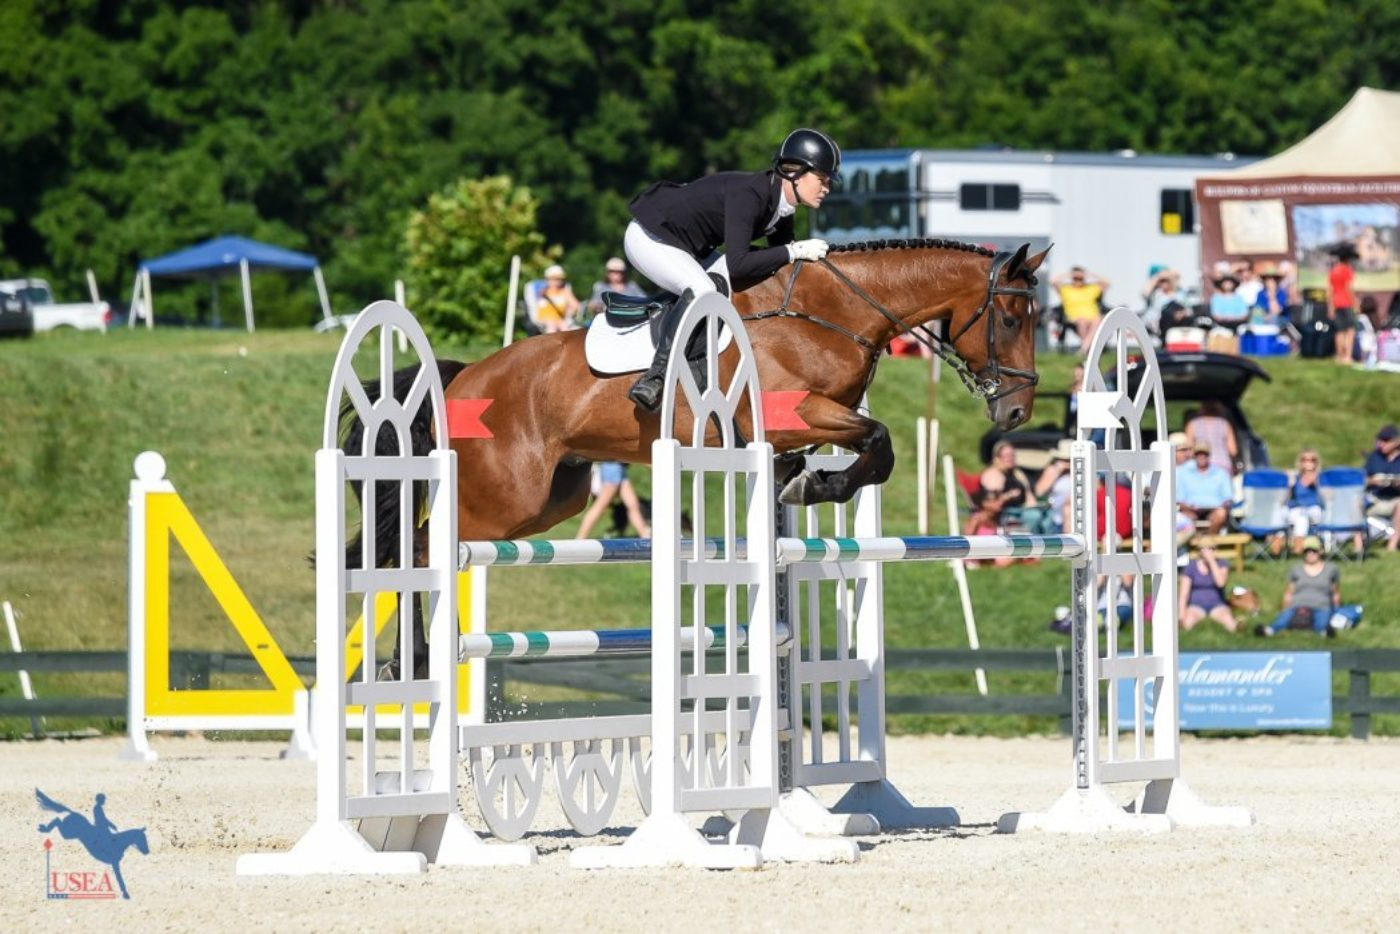 35th - Chelsea Kolman and Dauntless Courage - 44.6